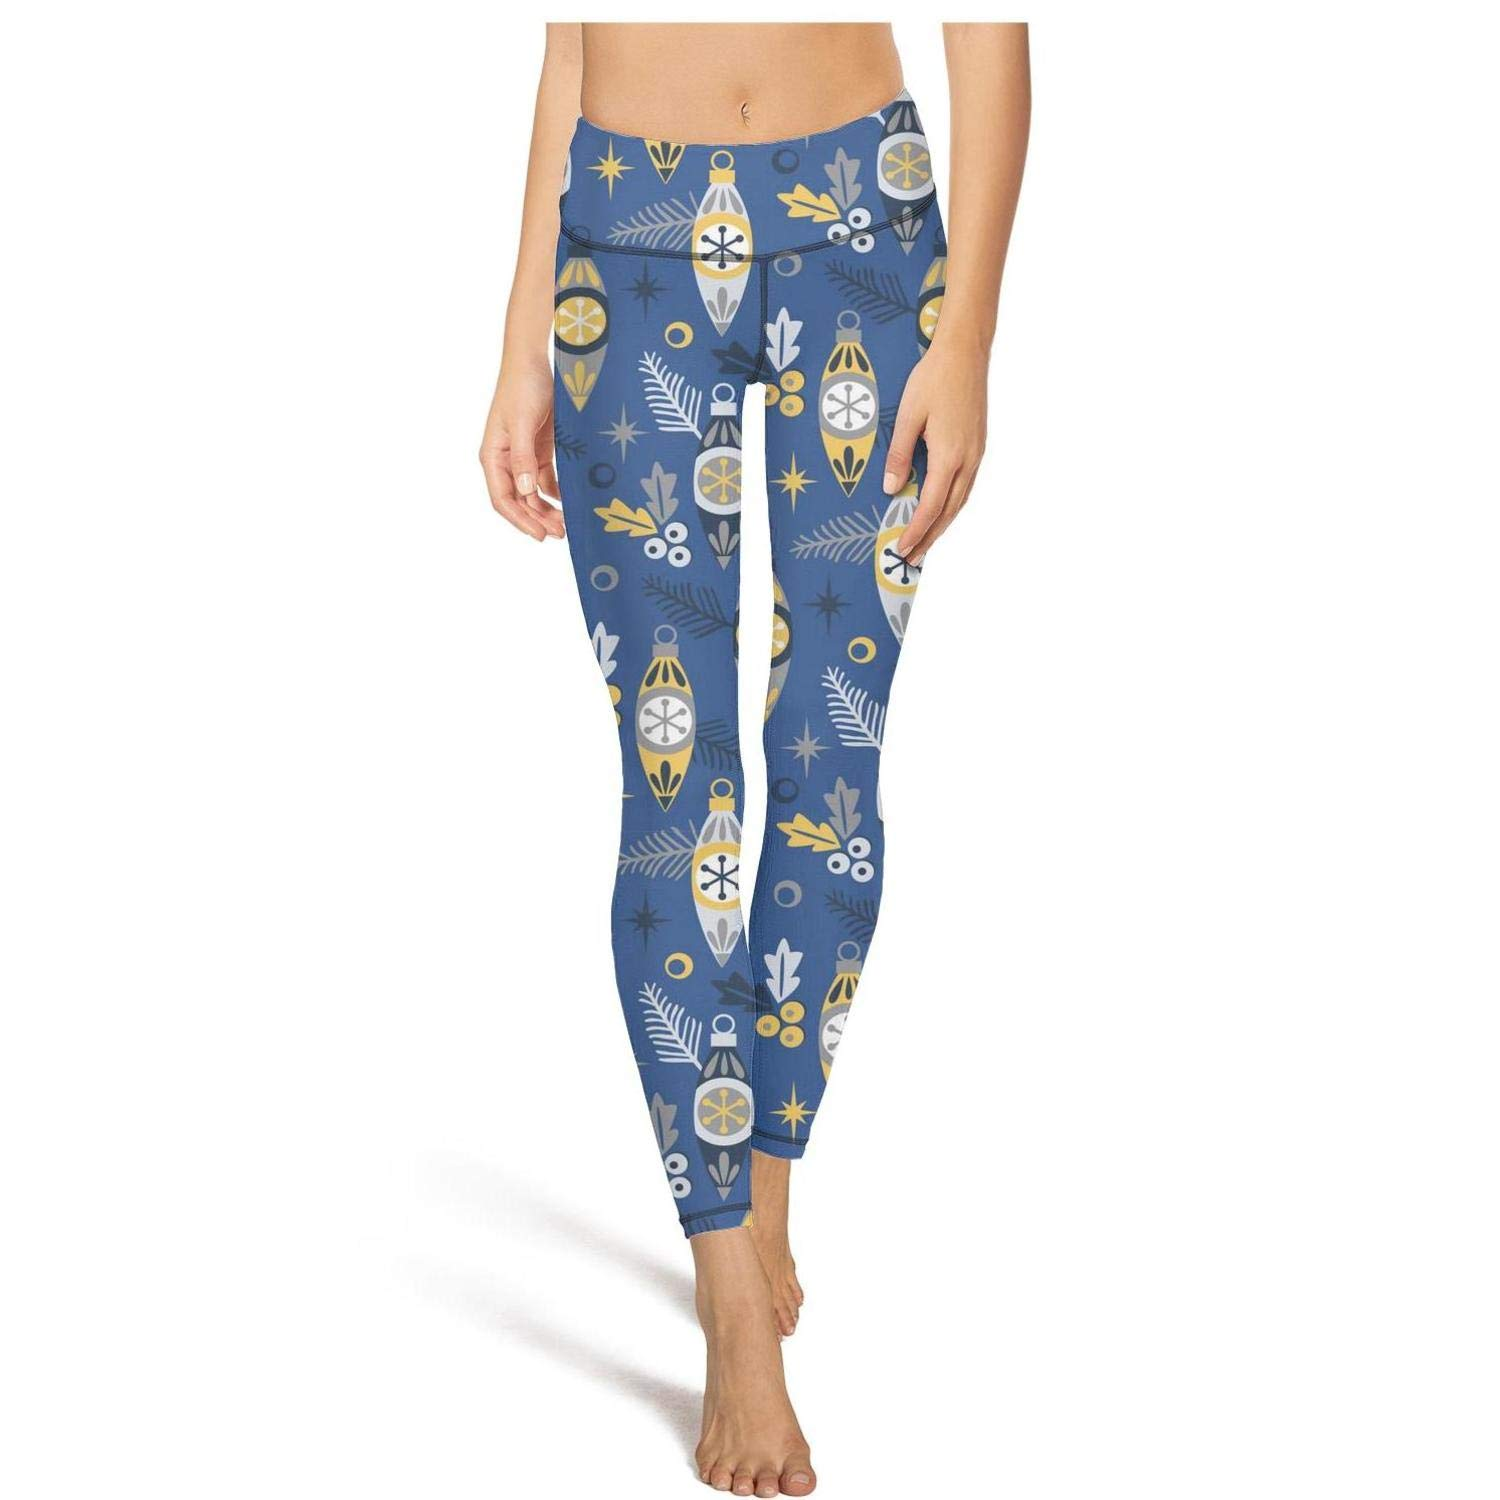 Christmas Holly Ornaments Medium Shadfyvgf Womens High Waisted Yoga Pants Cute Fluffy Squirrels and Nuts Leggings Outfit